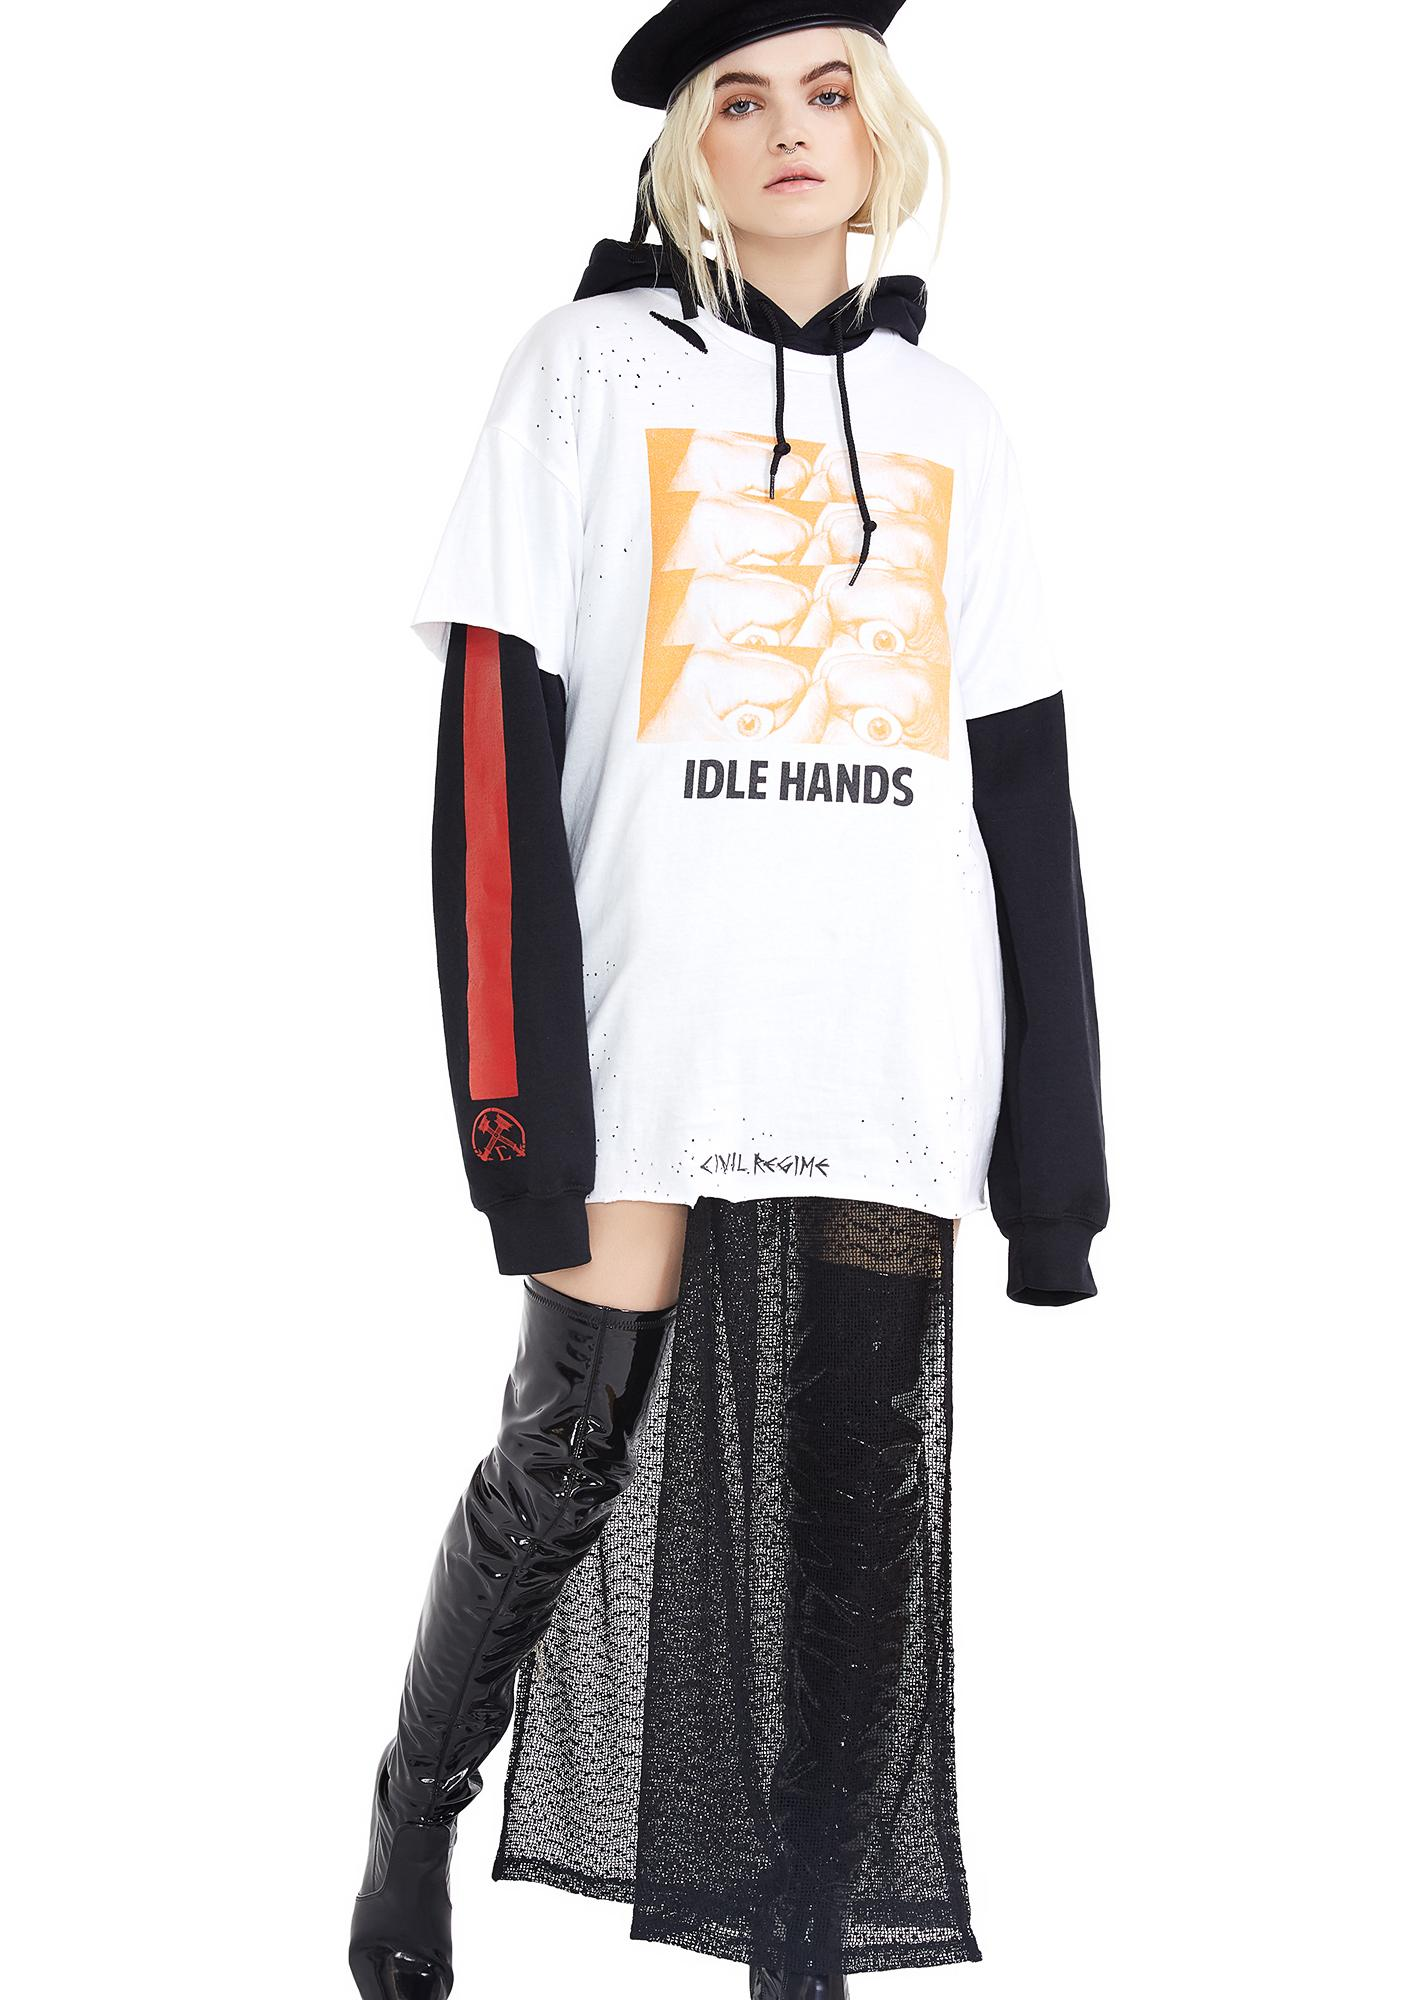 Civil Clothing Idle Hands Thrashed Tee